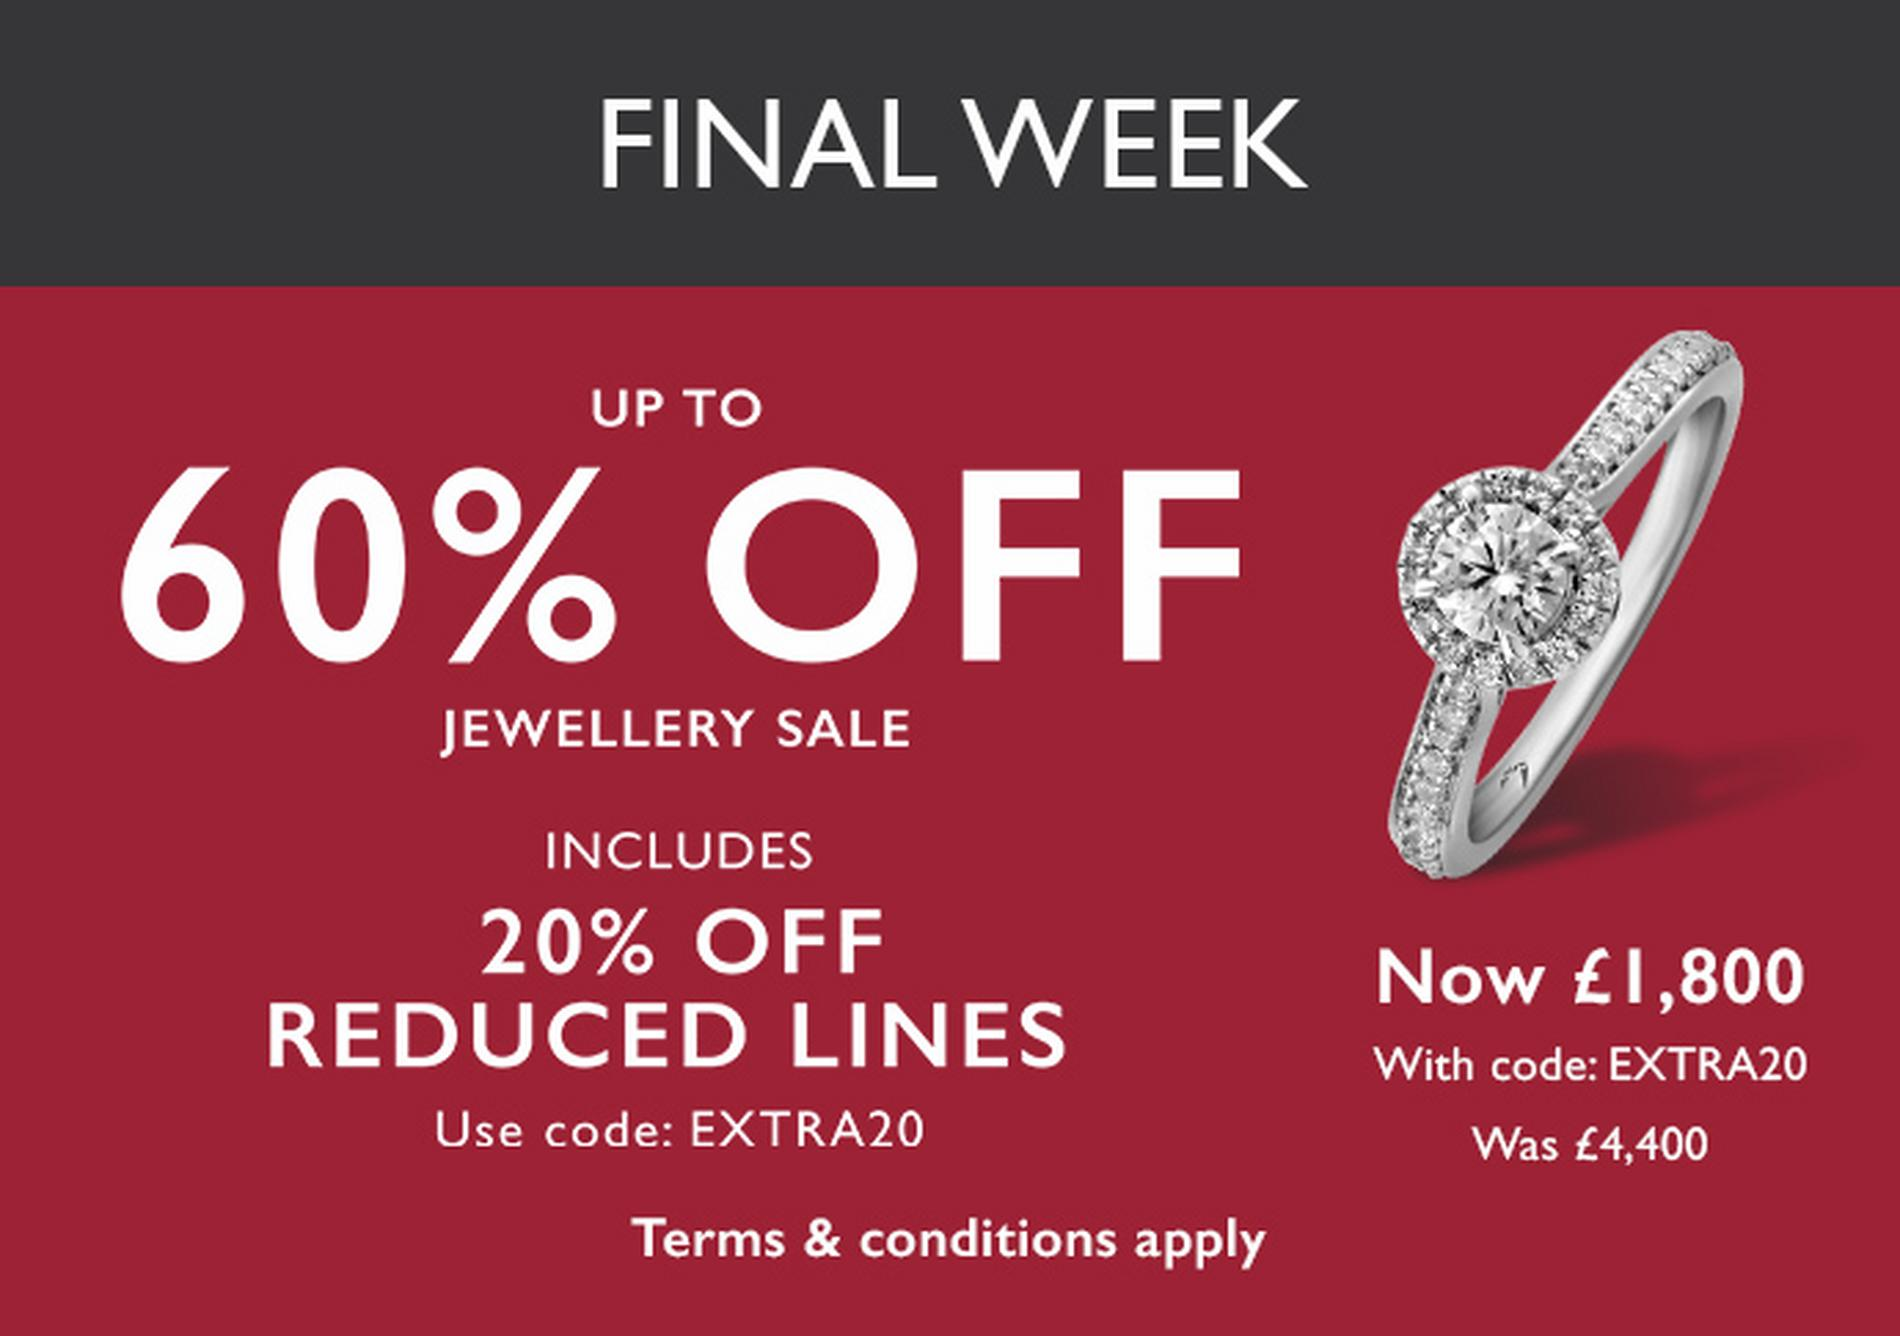 Up to Half Price Sale on jewellery and watches at Ernest Jones